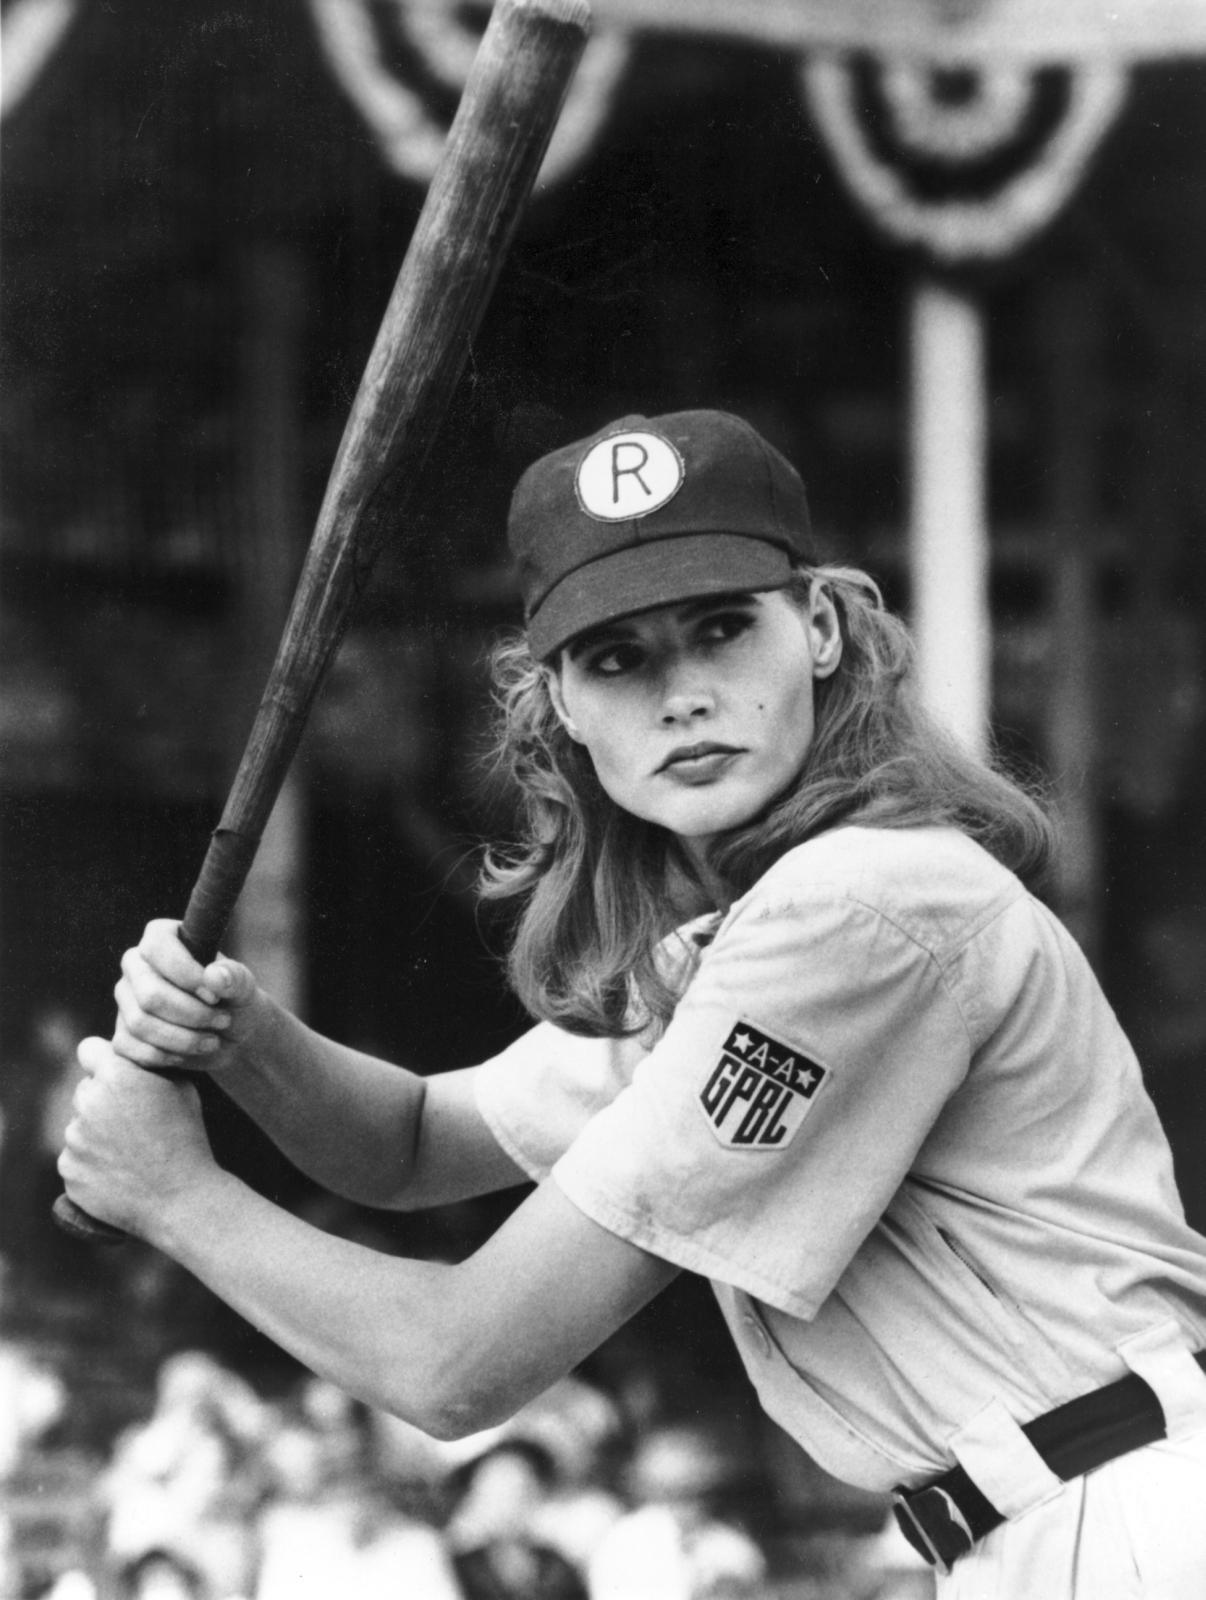 'A League Of Their Own': 13 Incredible Facts You Never Knew About The Iconic Flick